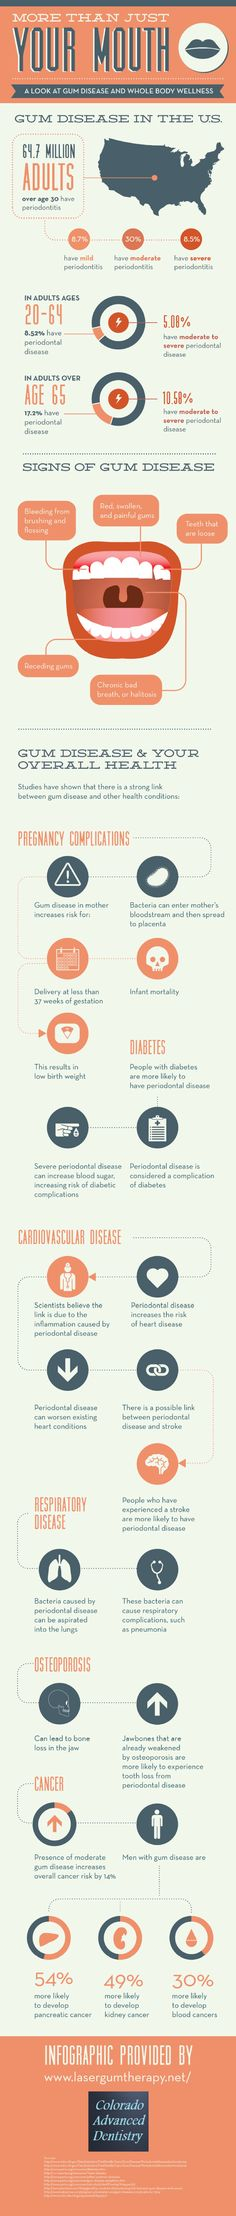 The impact of gum disease on your whole body...a large number of our population are unaware they have it and are unaware of the effects on their bodies...